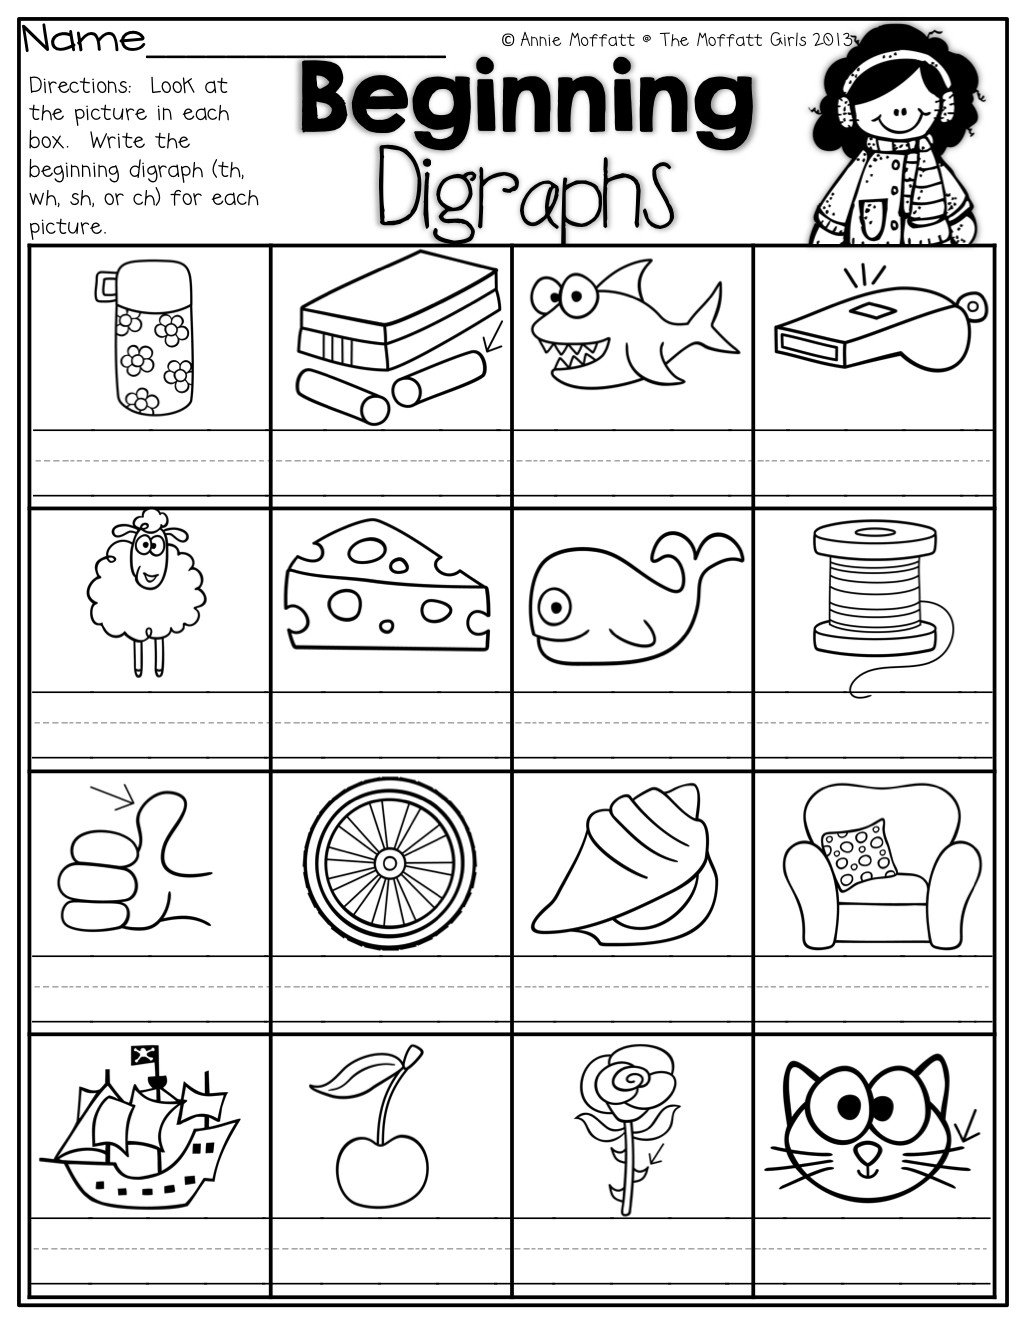 sh digraph worksheet write the beginning digraphs for each picture th wh sh or ch